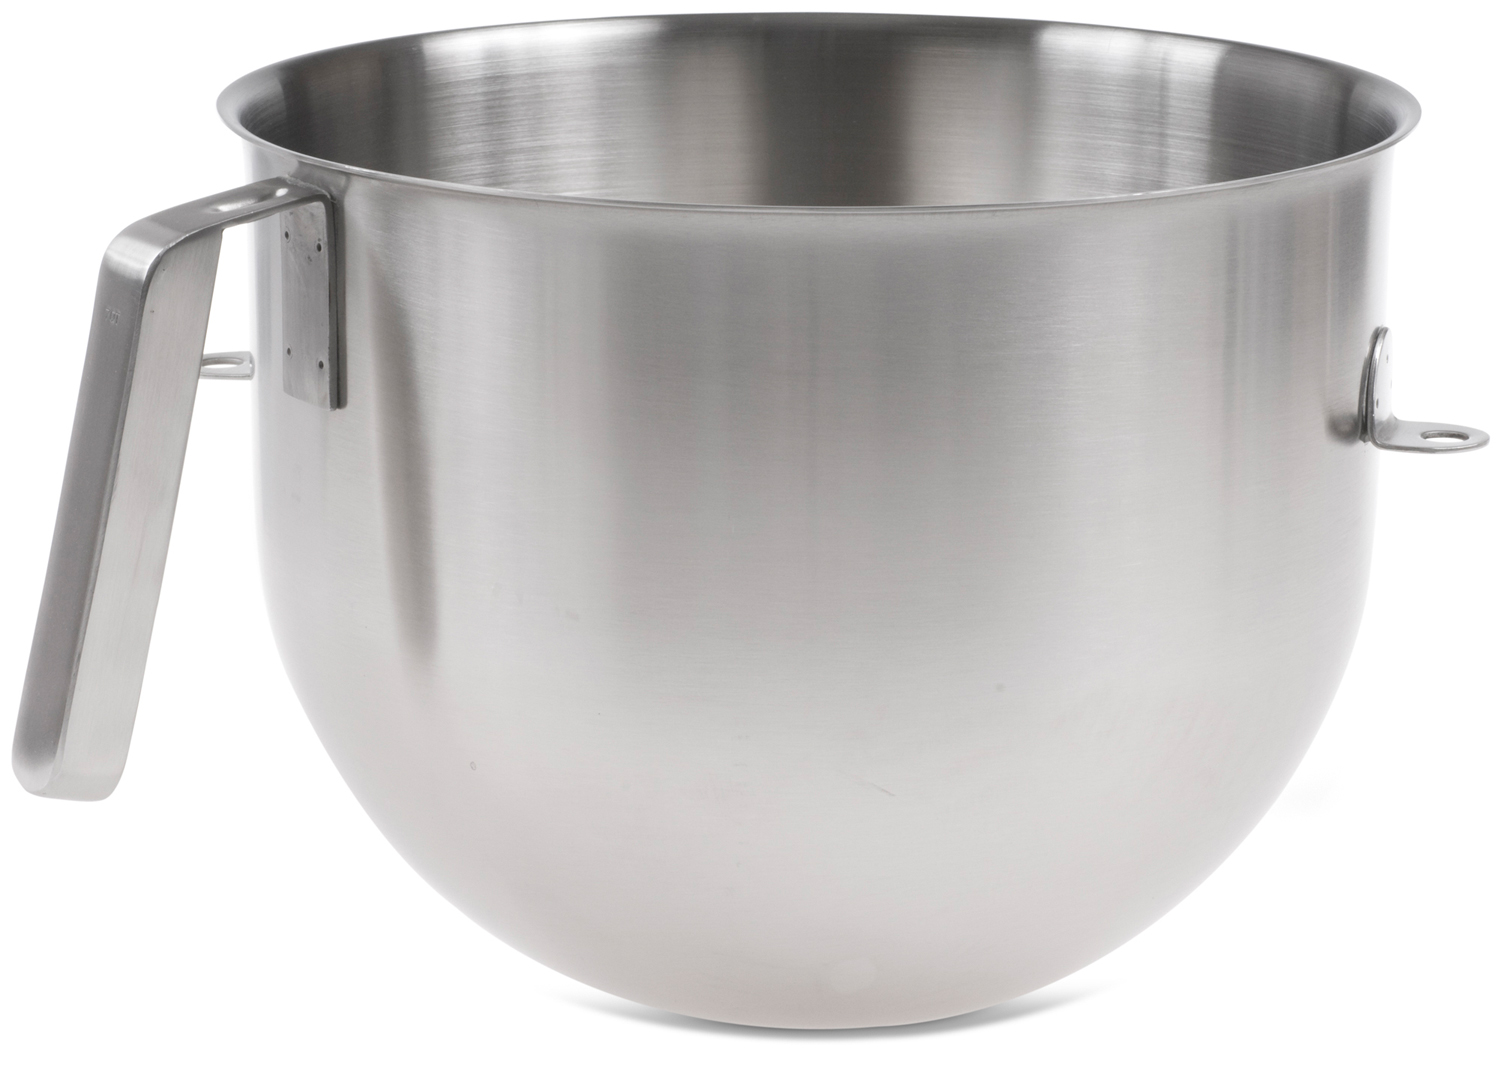 kitchen aid bowls skylights stainless steel bowl for 7 quart commercial mixer kitchenaid qt p208